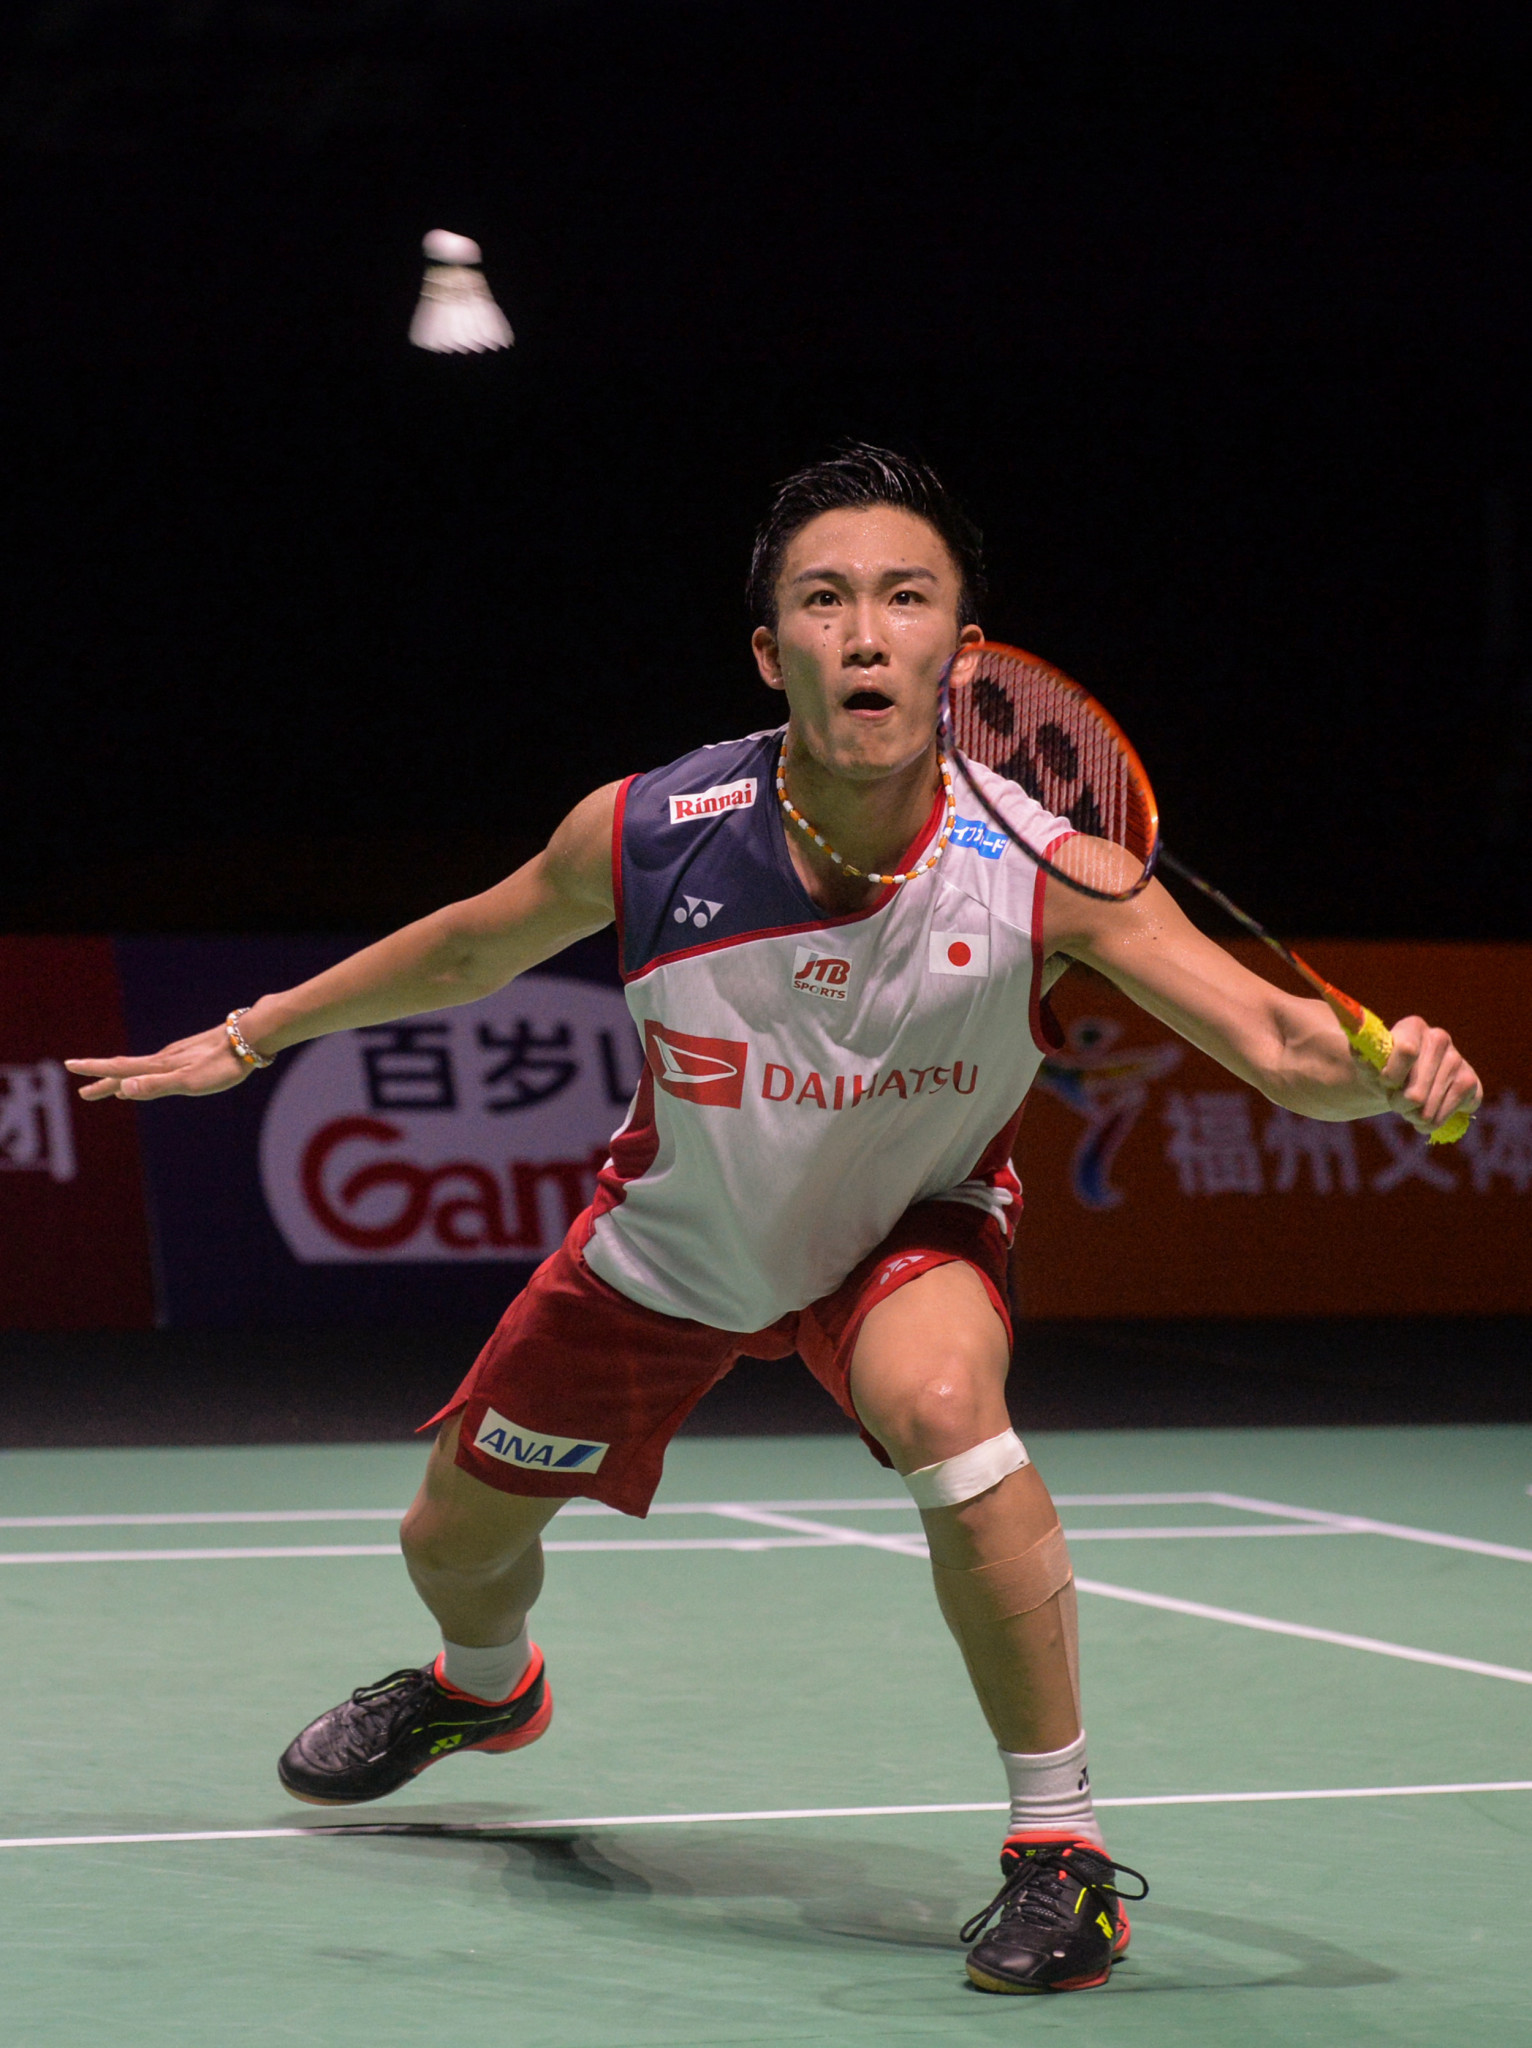 Kento Momota continued his fine run of form to reach the last four ©Getty Images